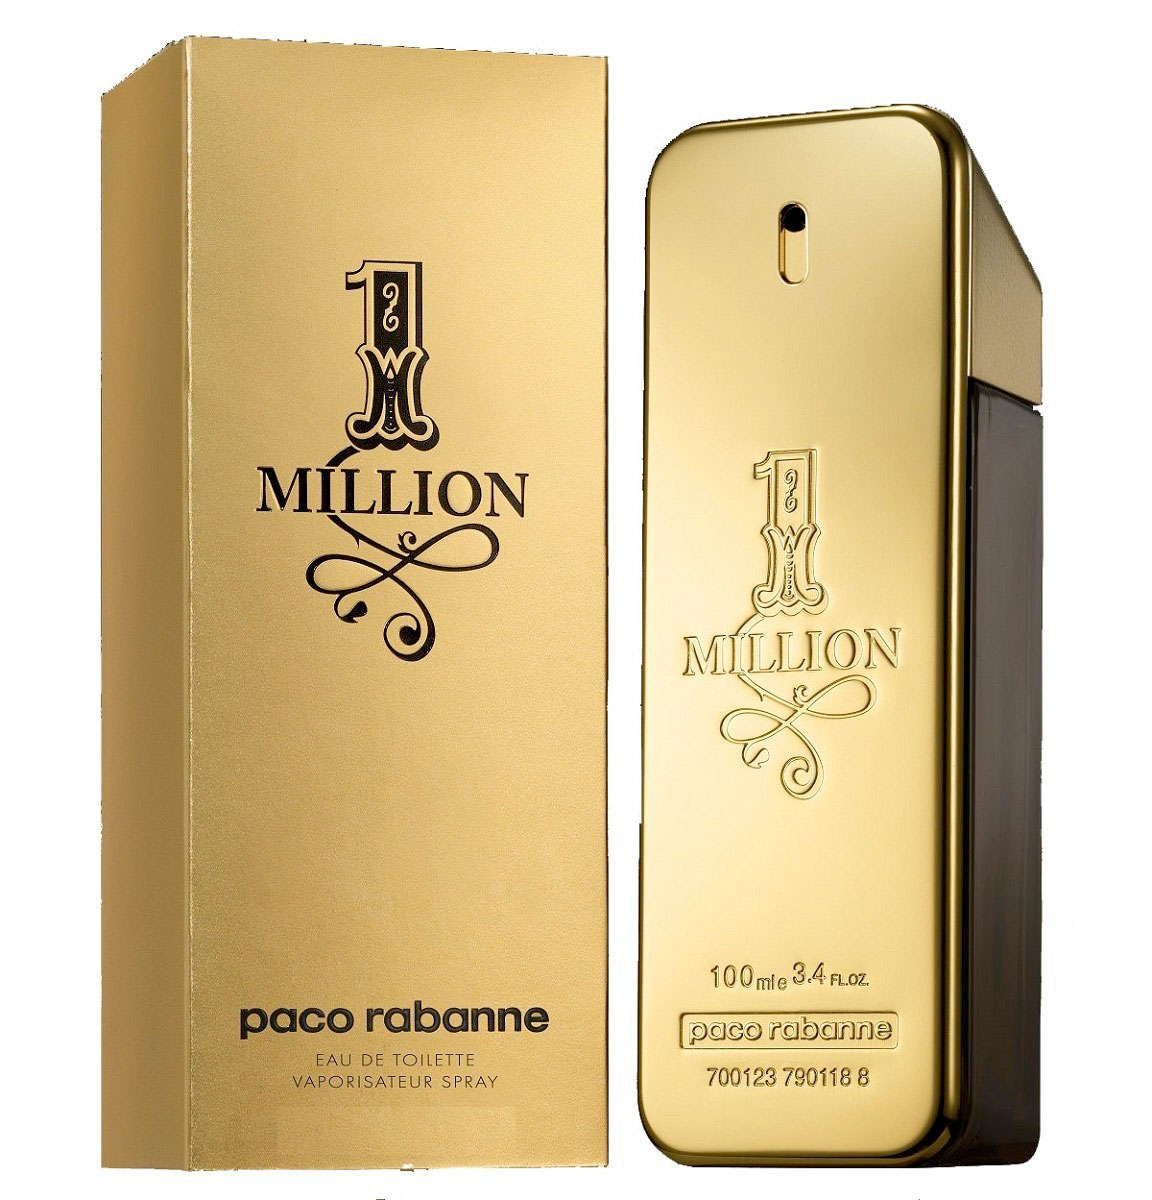 1 million paco rabanne cologne ein es parfum f r m nner 2008. Black Bedroom Furniture Sets. Home Design Ideas